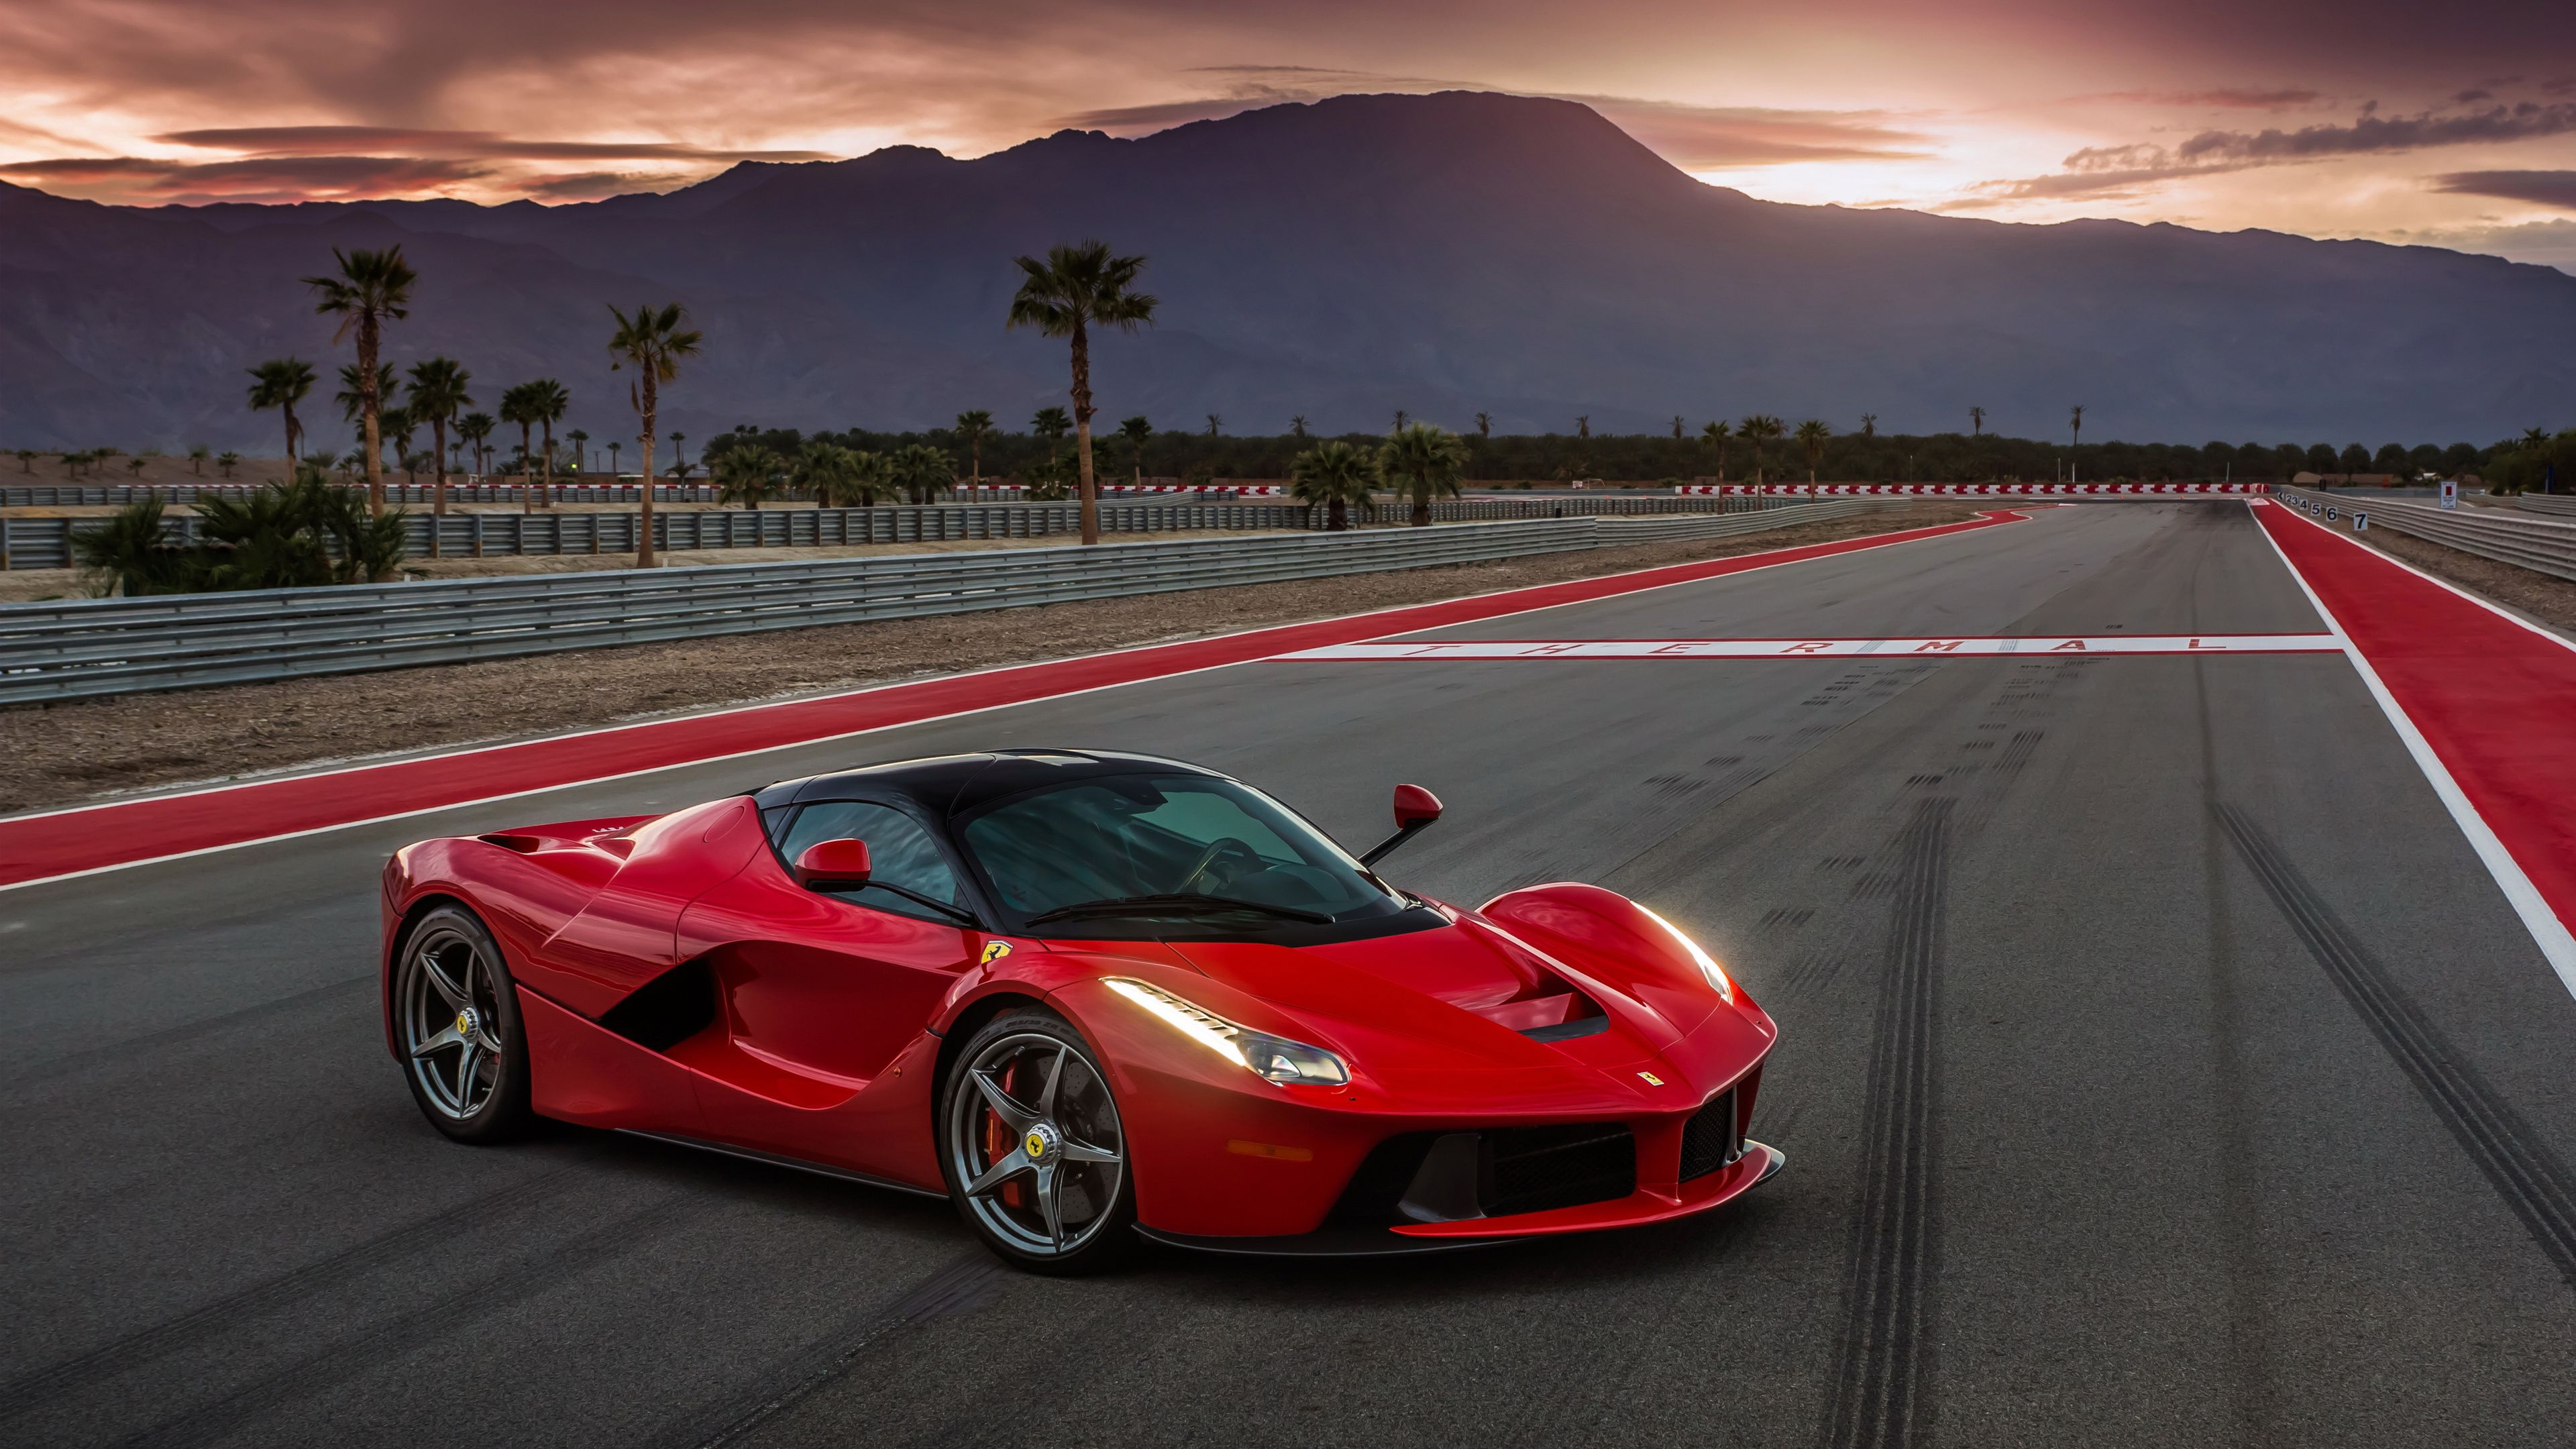 Ferrari Laferrari K Wallpaper Hd Car Wallpapers